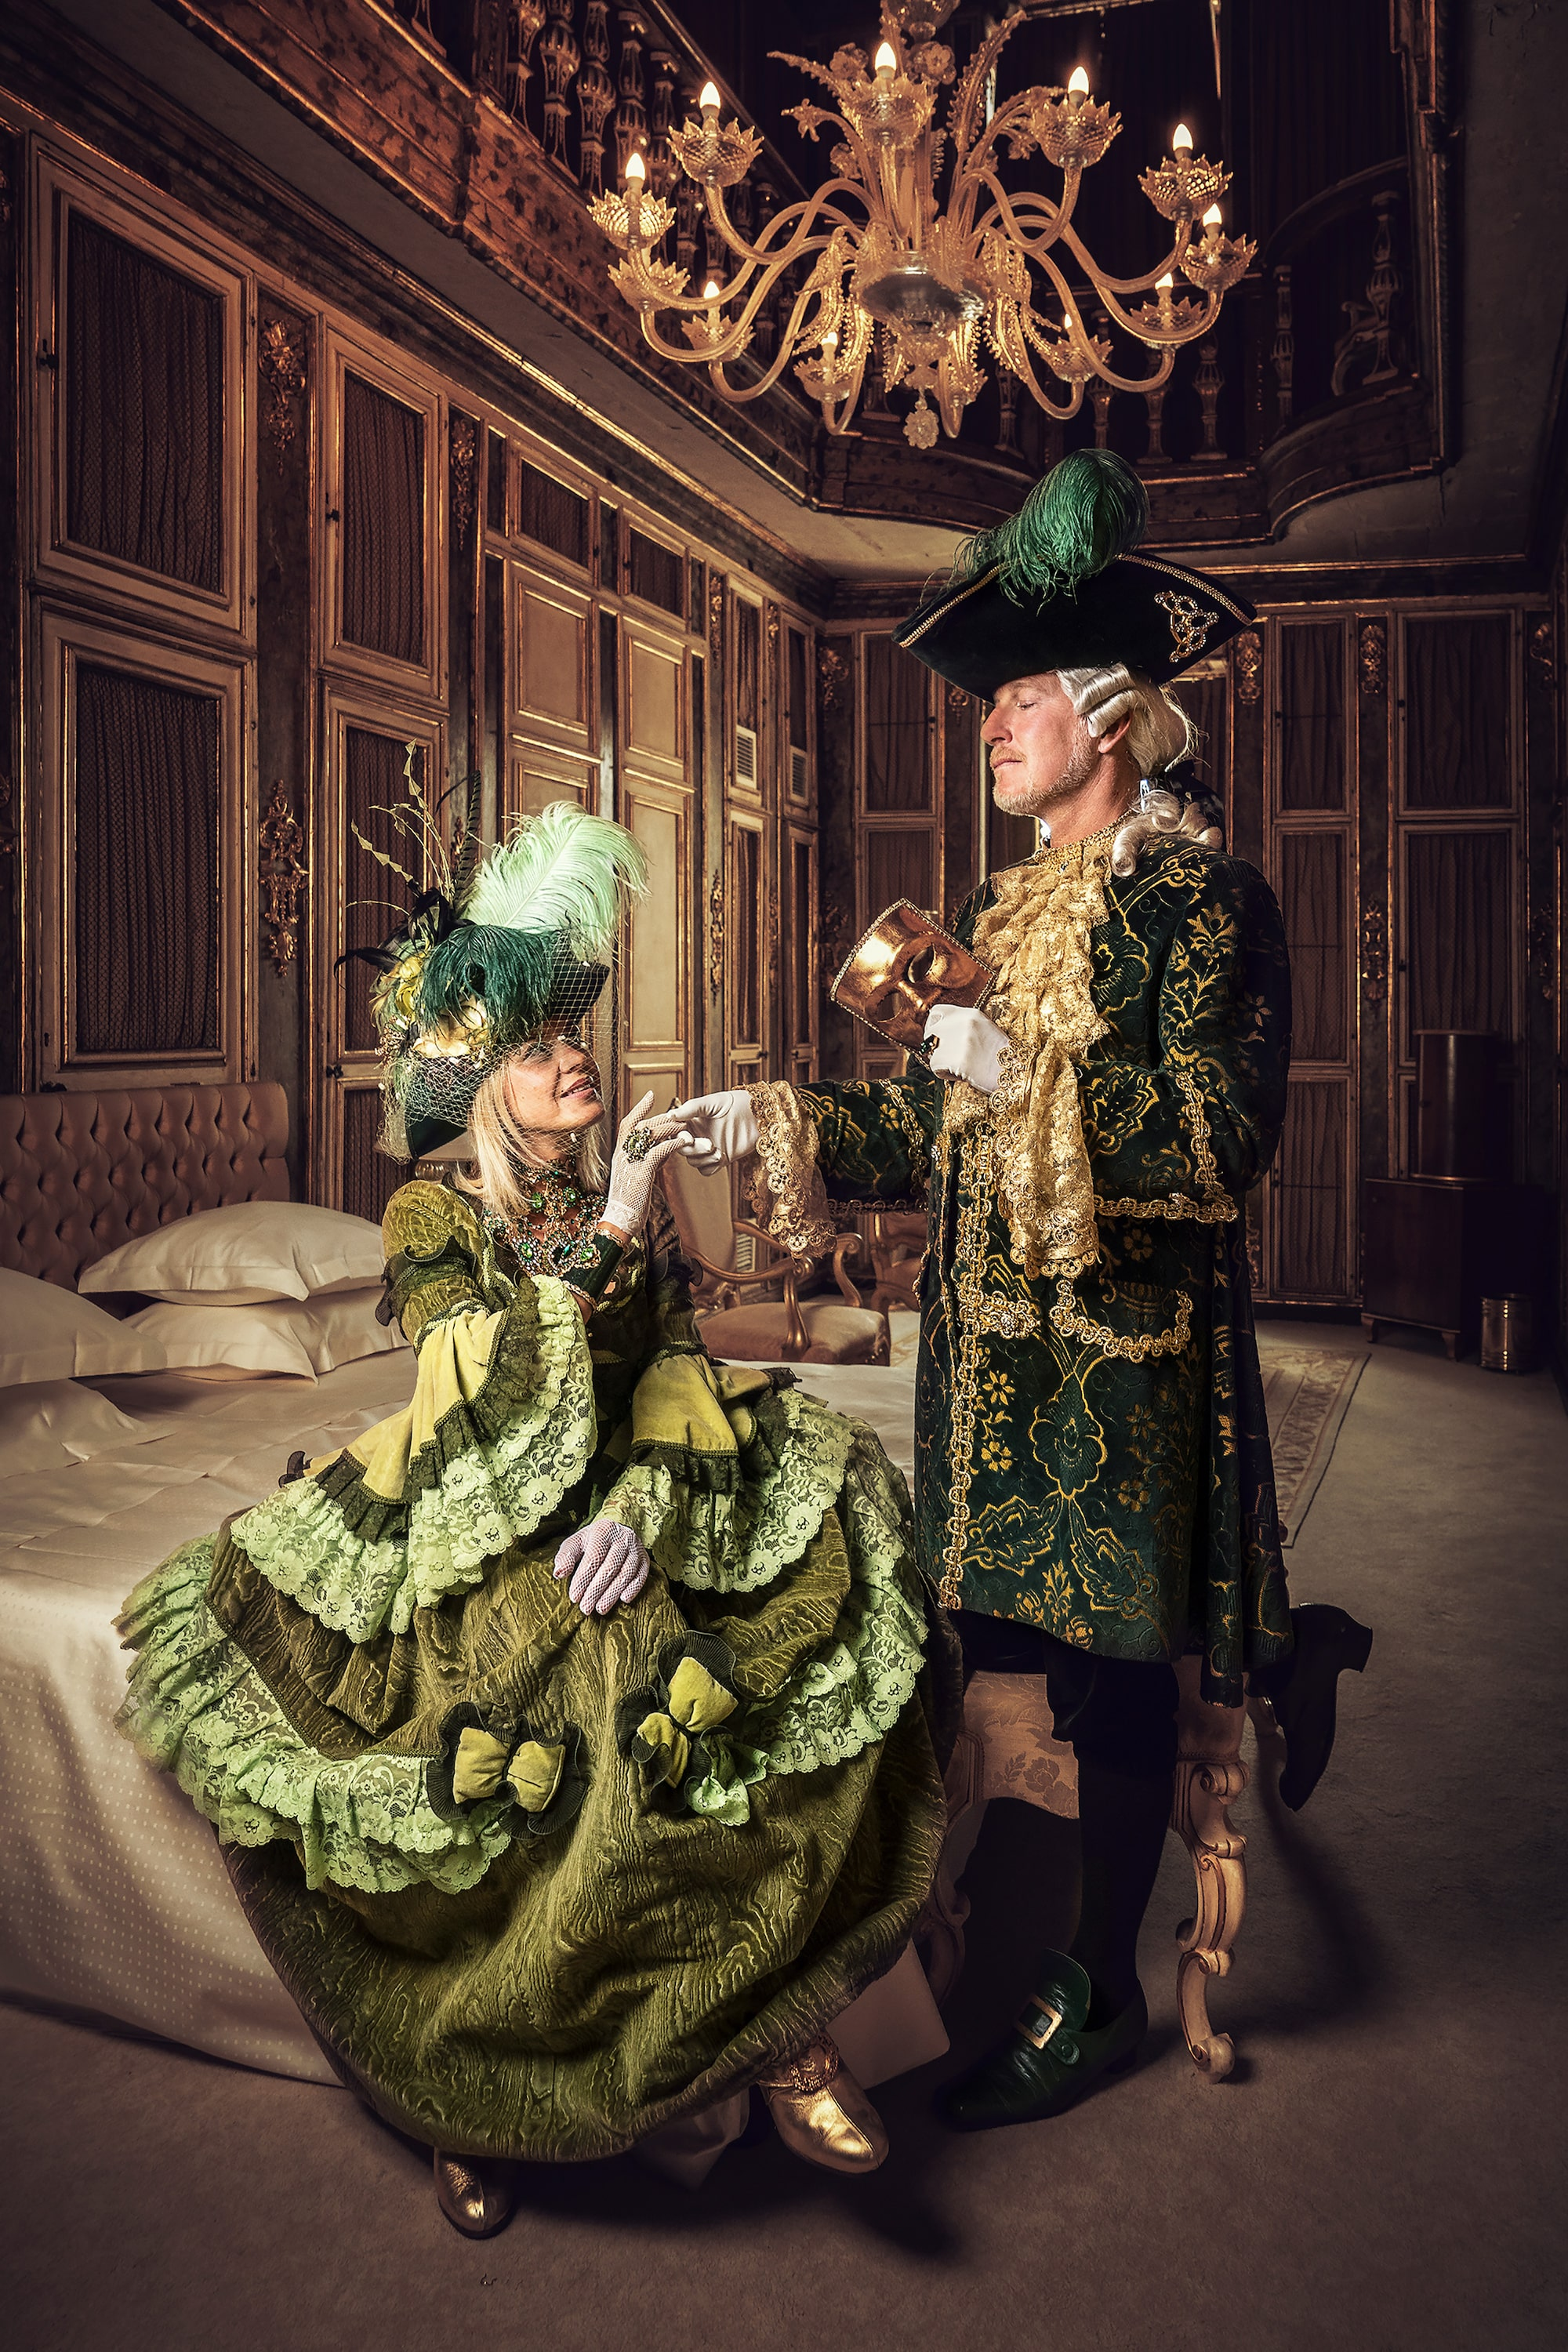 mathias kniepeiss sony alpha 7RIII man and woman in green costume with the man holding the ladys hand